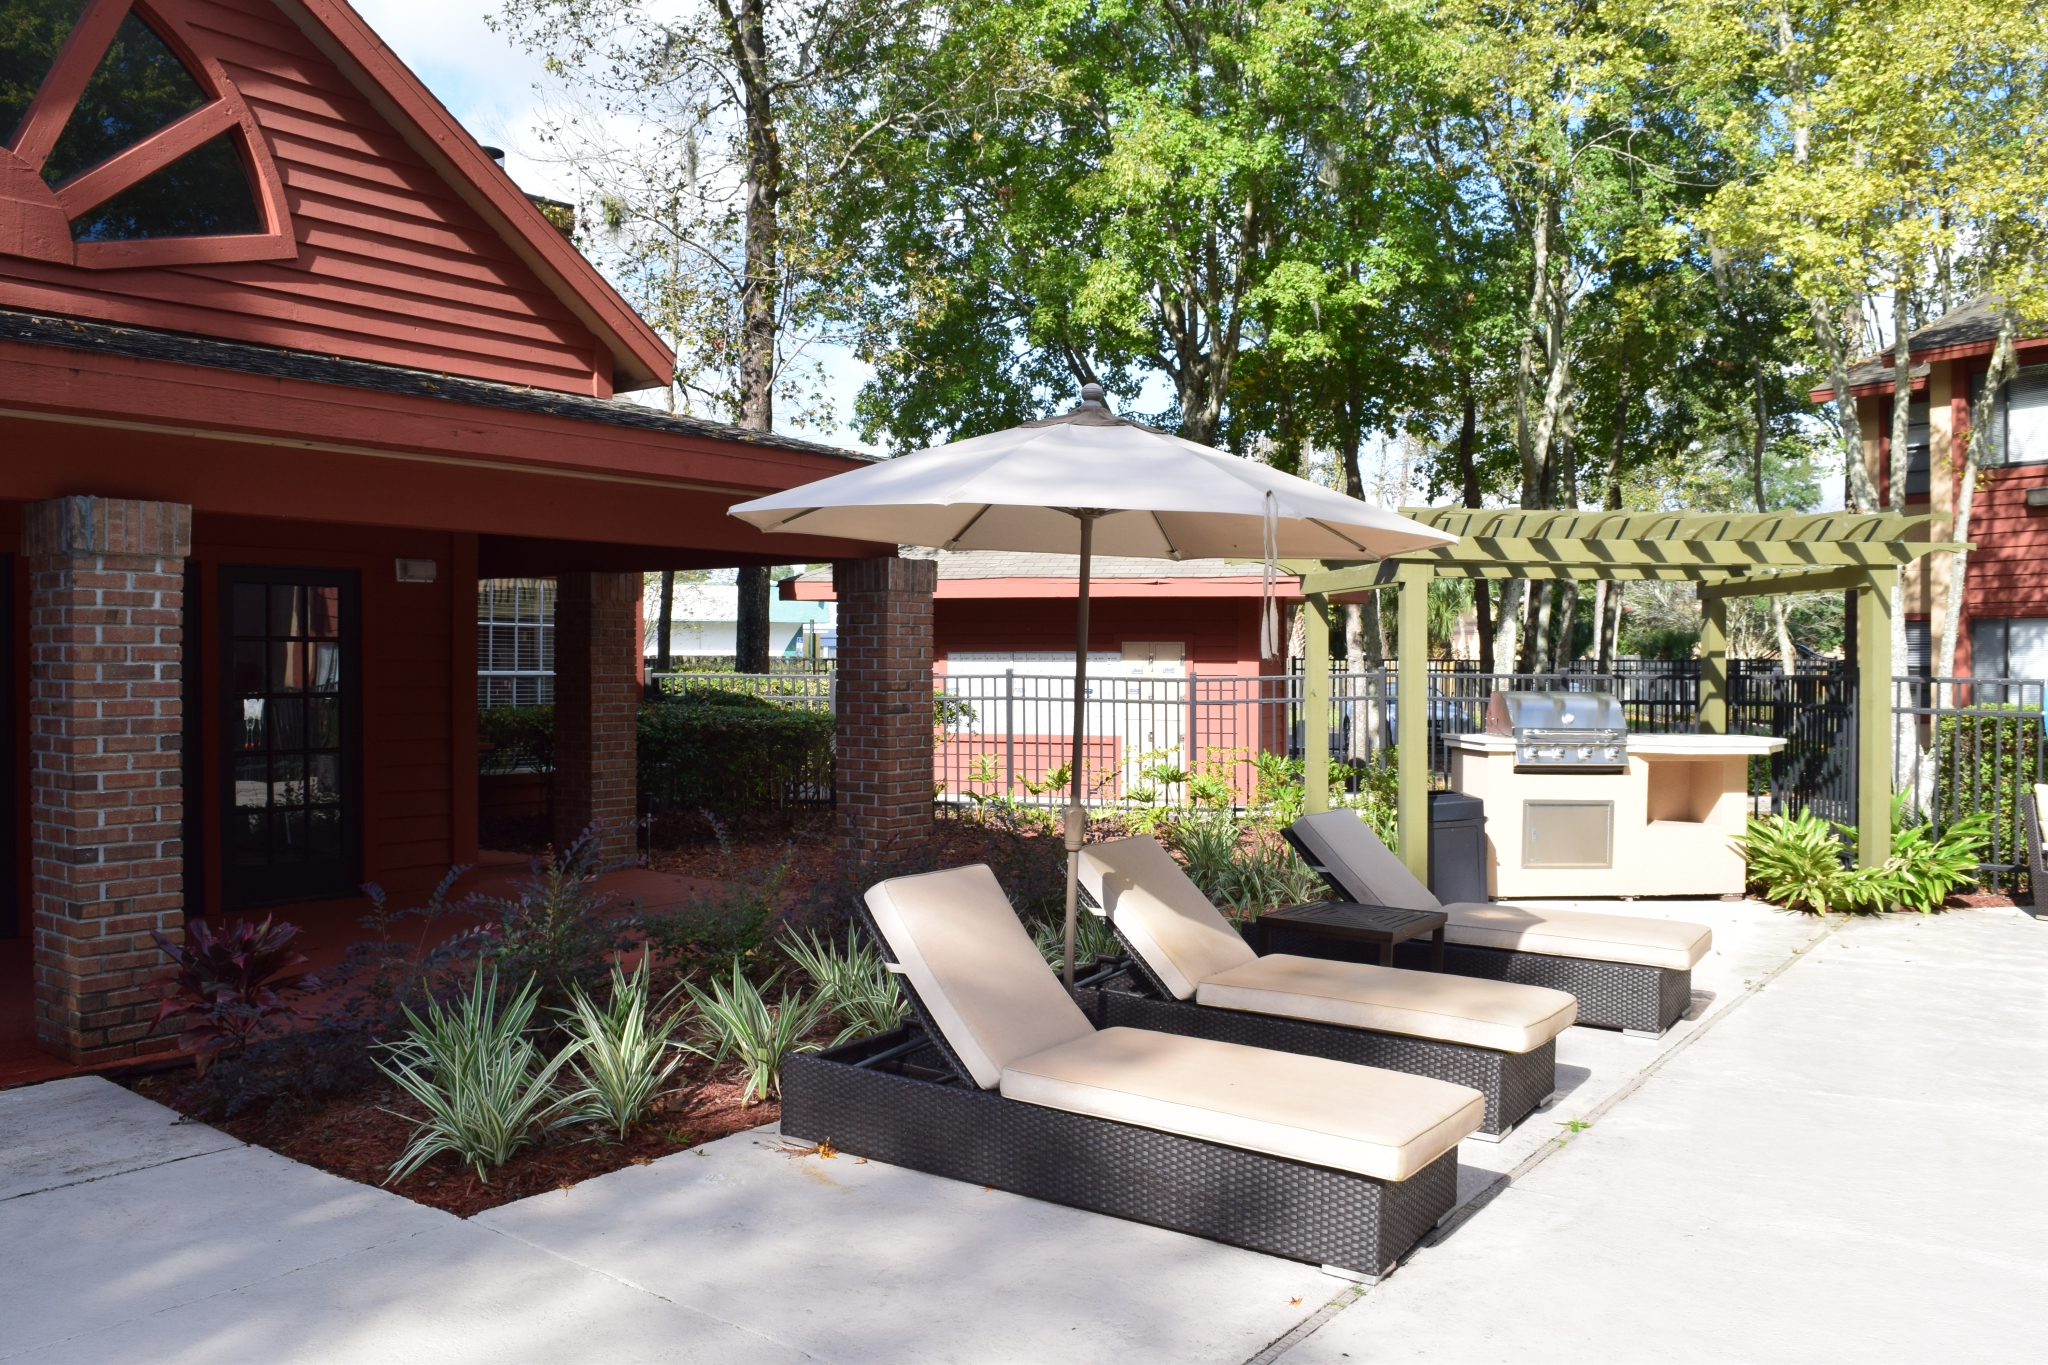 Deerfield Apartments view of padded modern lounge chairs under umbrella next to a gazebo with an outdoor grill